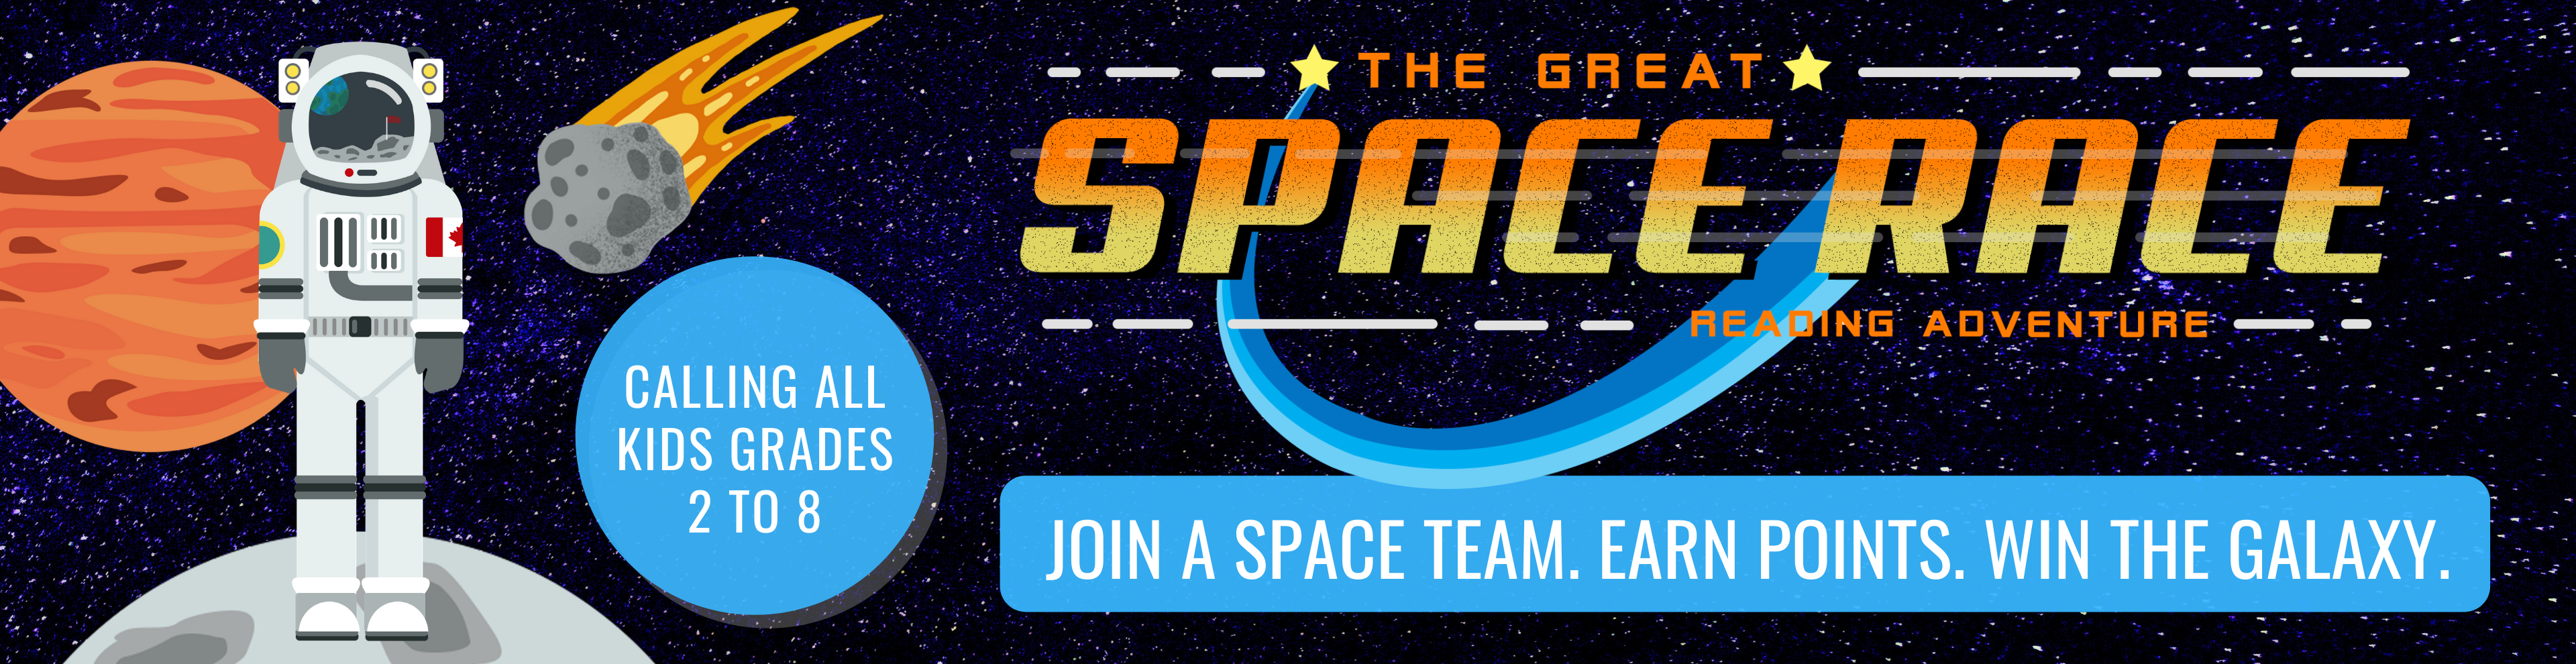 Great Space Race - Web Banner